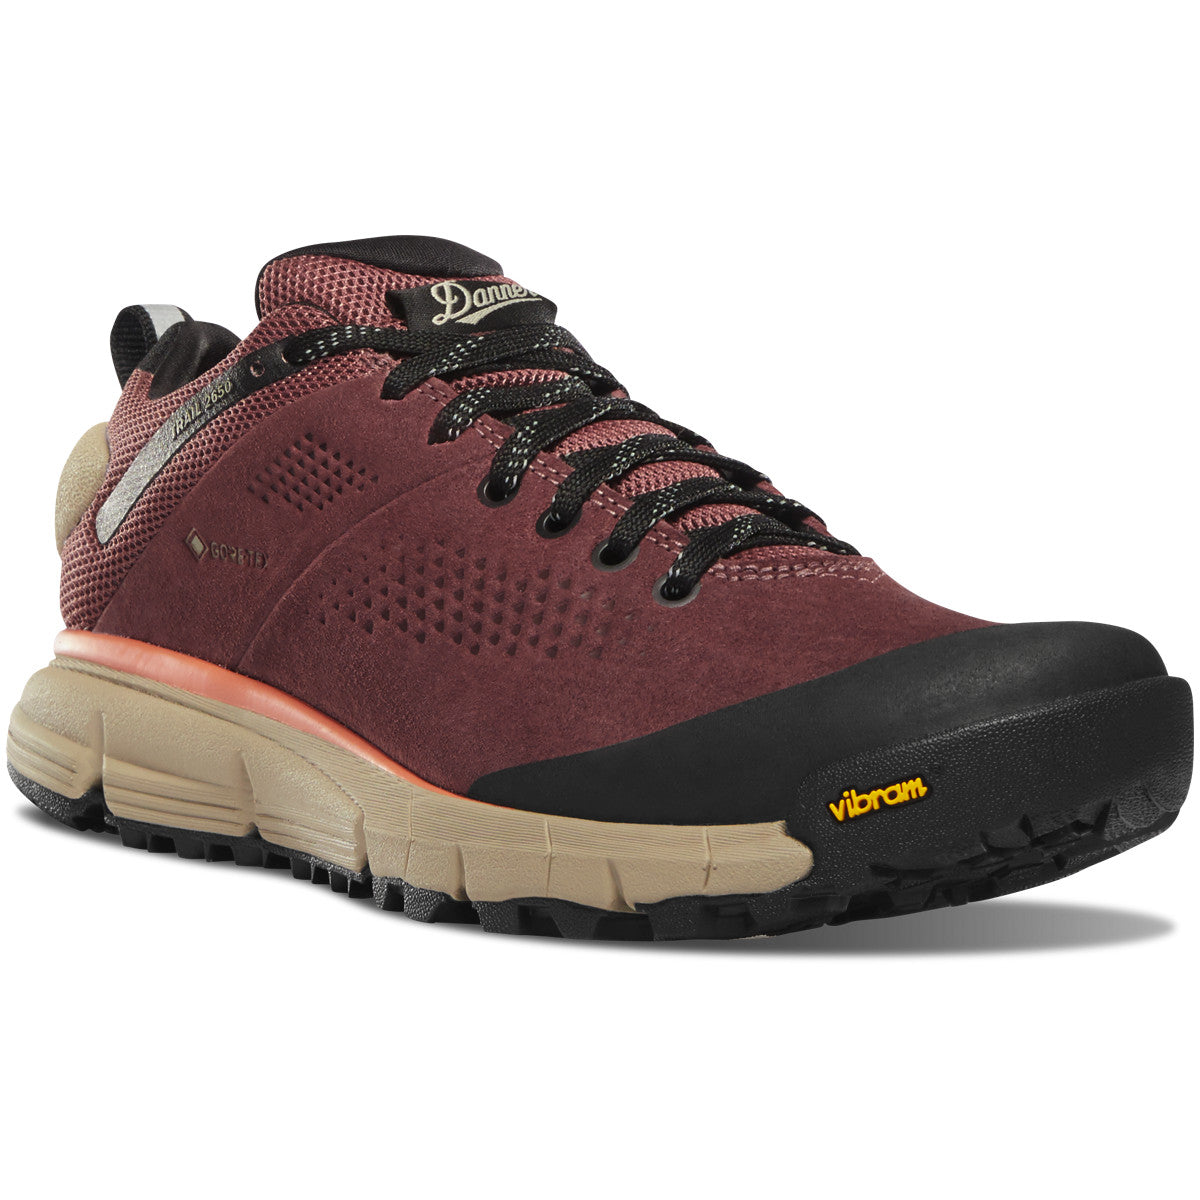 Trail 2650 GTX - Women's